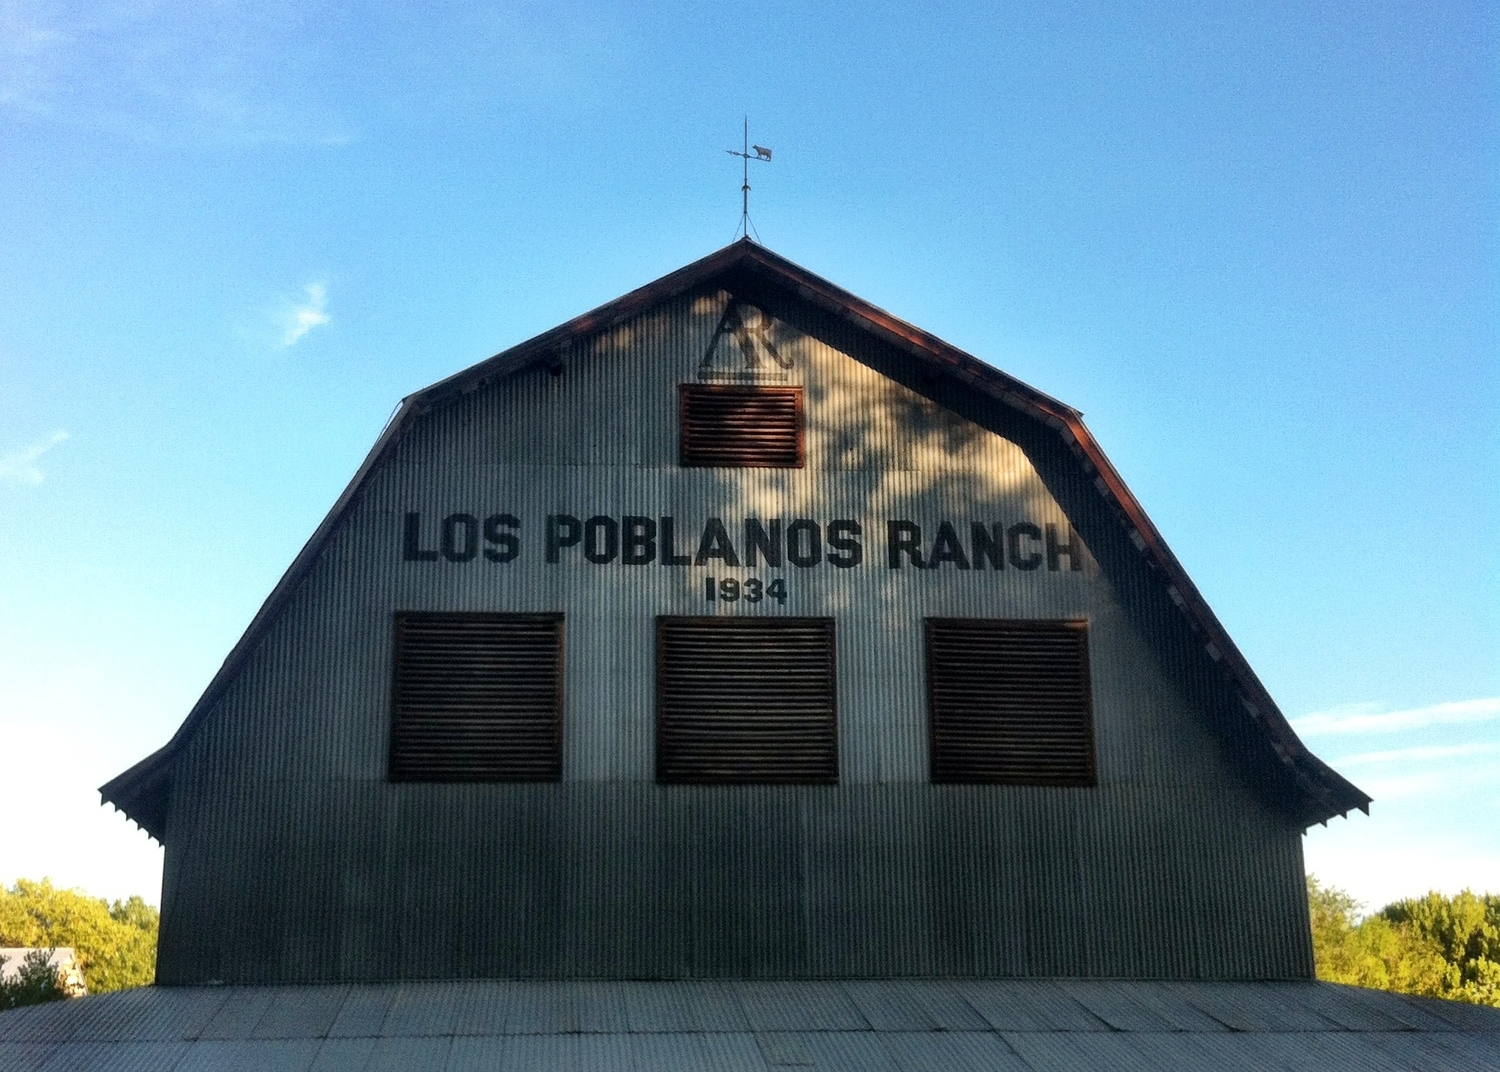 Los Poblanos was inhabited by the Anasazi or ancient Pueblo Indians in the 14  th  century. The land was part of a land grant from the Spanish Crown 1716. In the 1930's Ruth and Albert Simms named their ranch Los Poblanos, of the People, where they farmed alfalfa, sugar beets, oats and corn. Home to Creamland Dairies, their 400 head of prize winning Holstein and Gurnsey cows were famed for their butterfat production, and provided much of the milk to the Albuquerque area. The Rembe family uses the old hay barn to dry the lavender that they use for their Los Poblanos spa products.